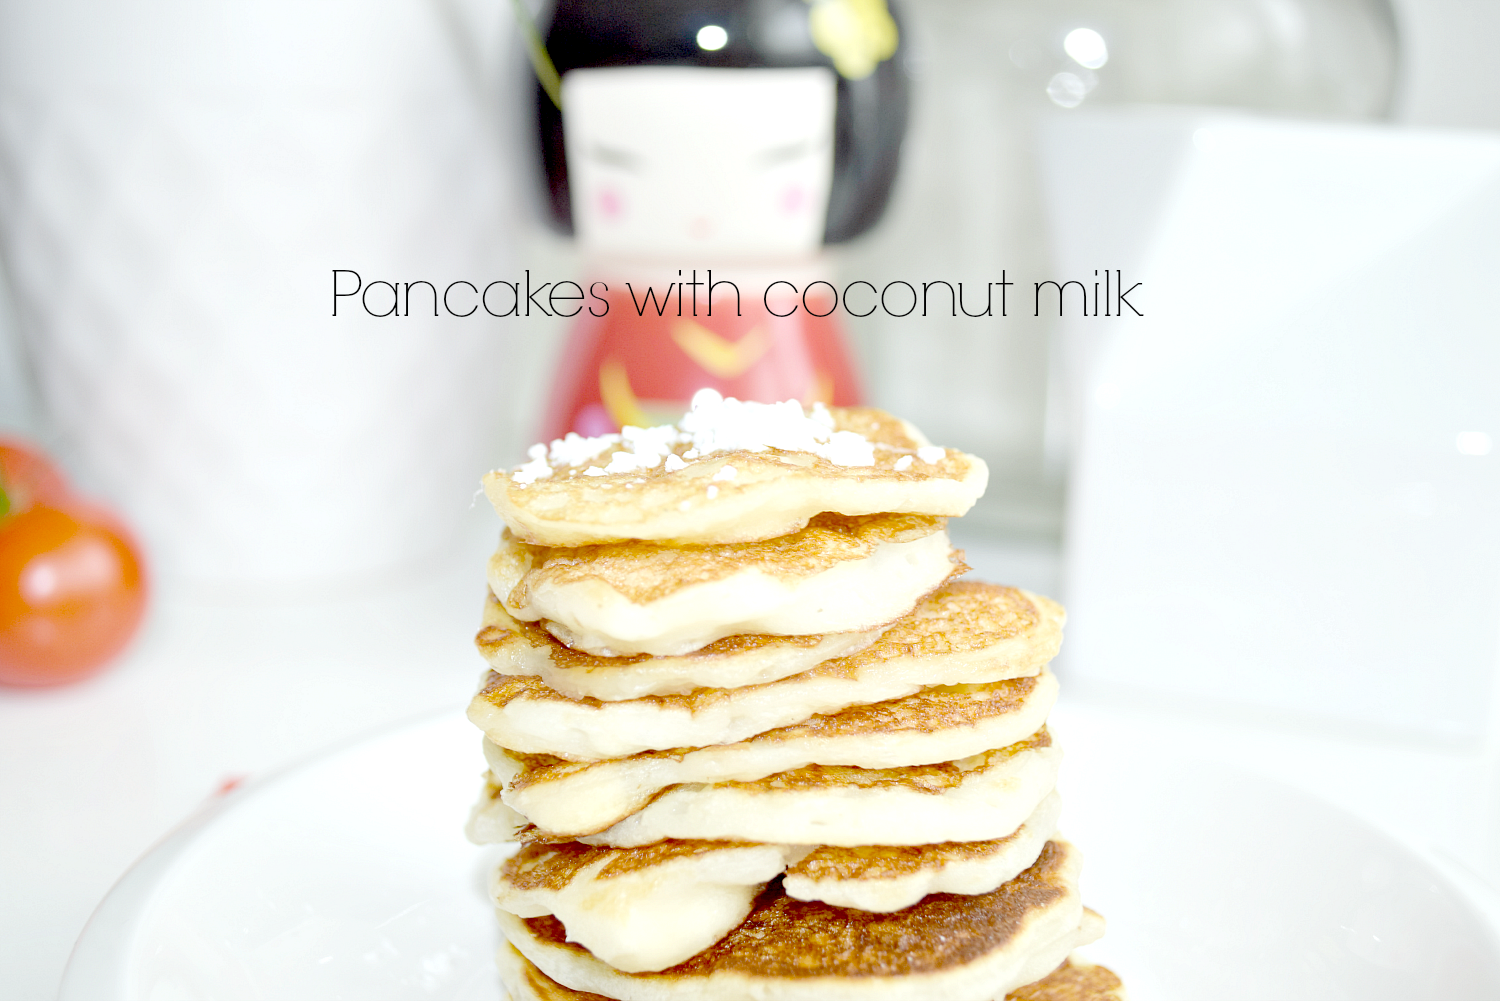 Pancakes with coconut milk